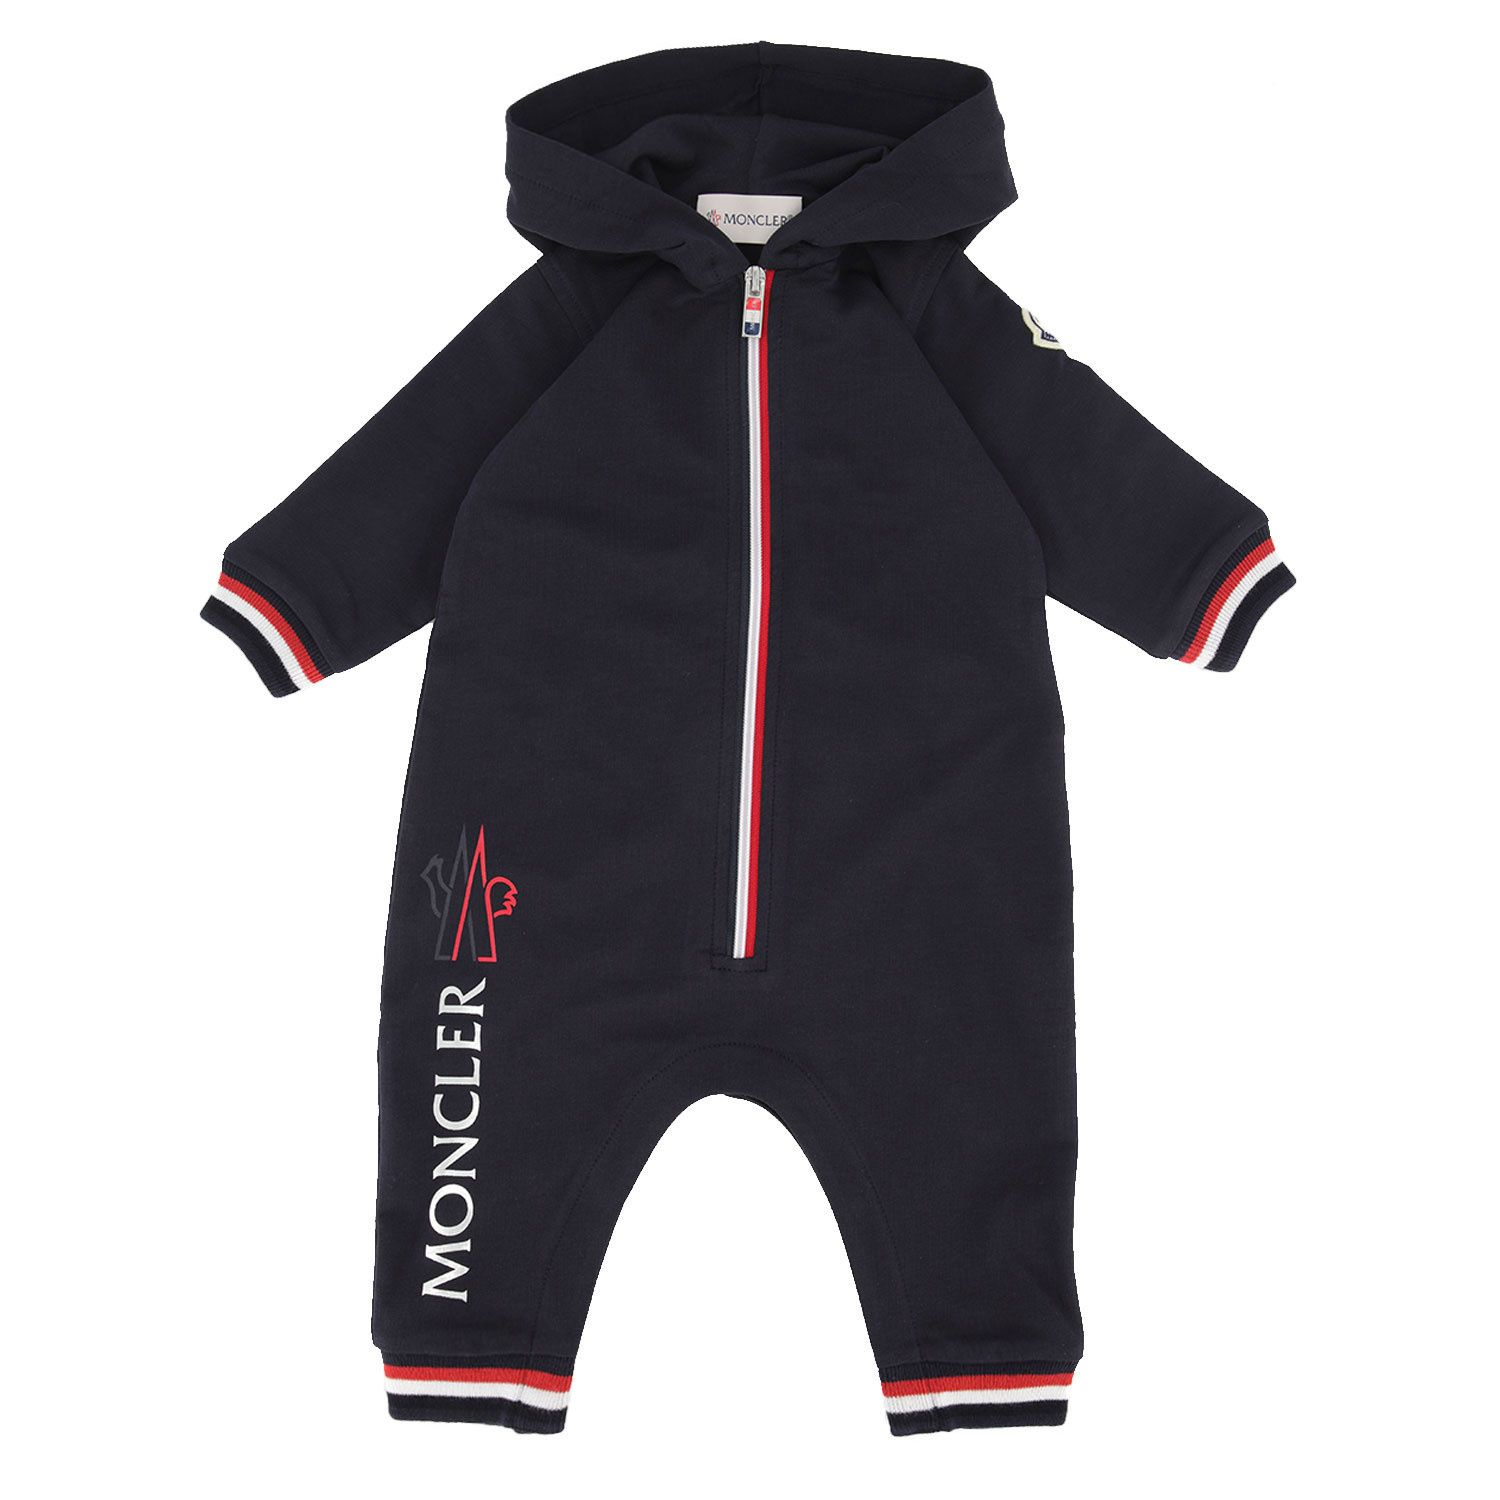 Picture of Moncler 8L72300 baby playsuit navy